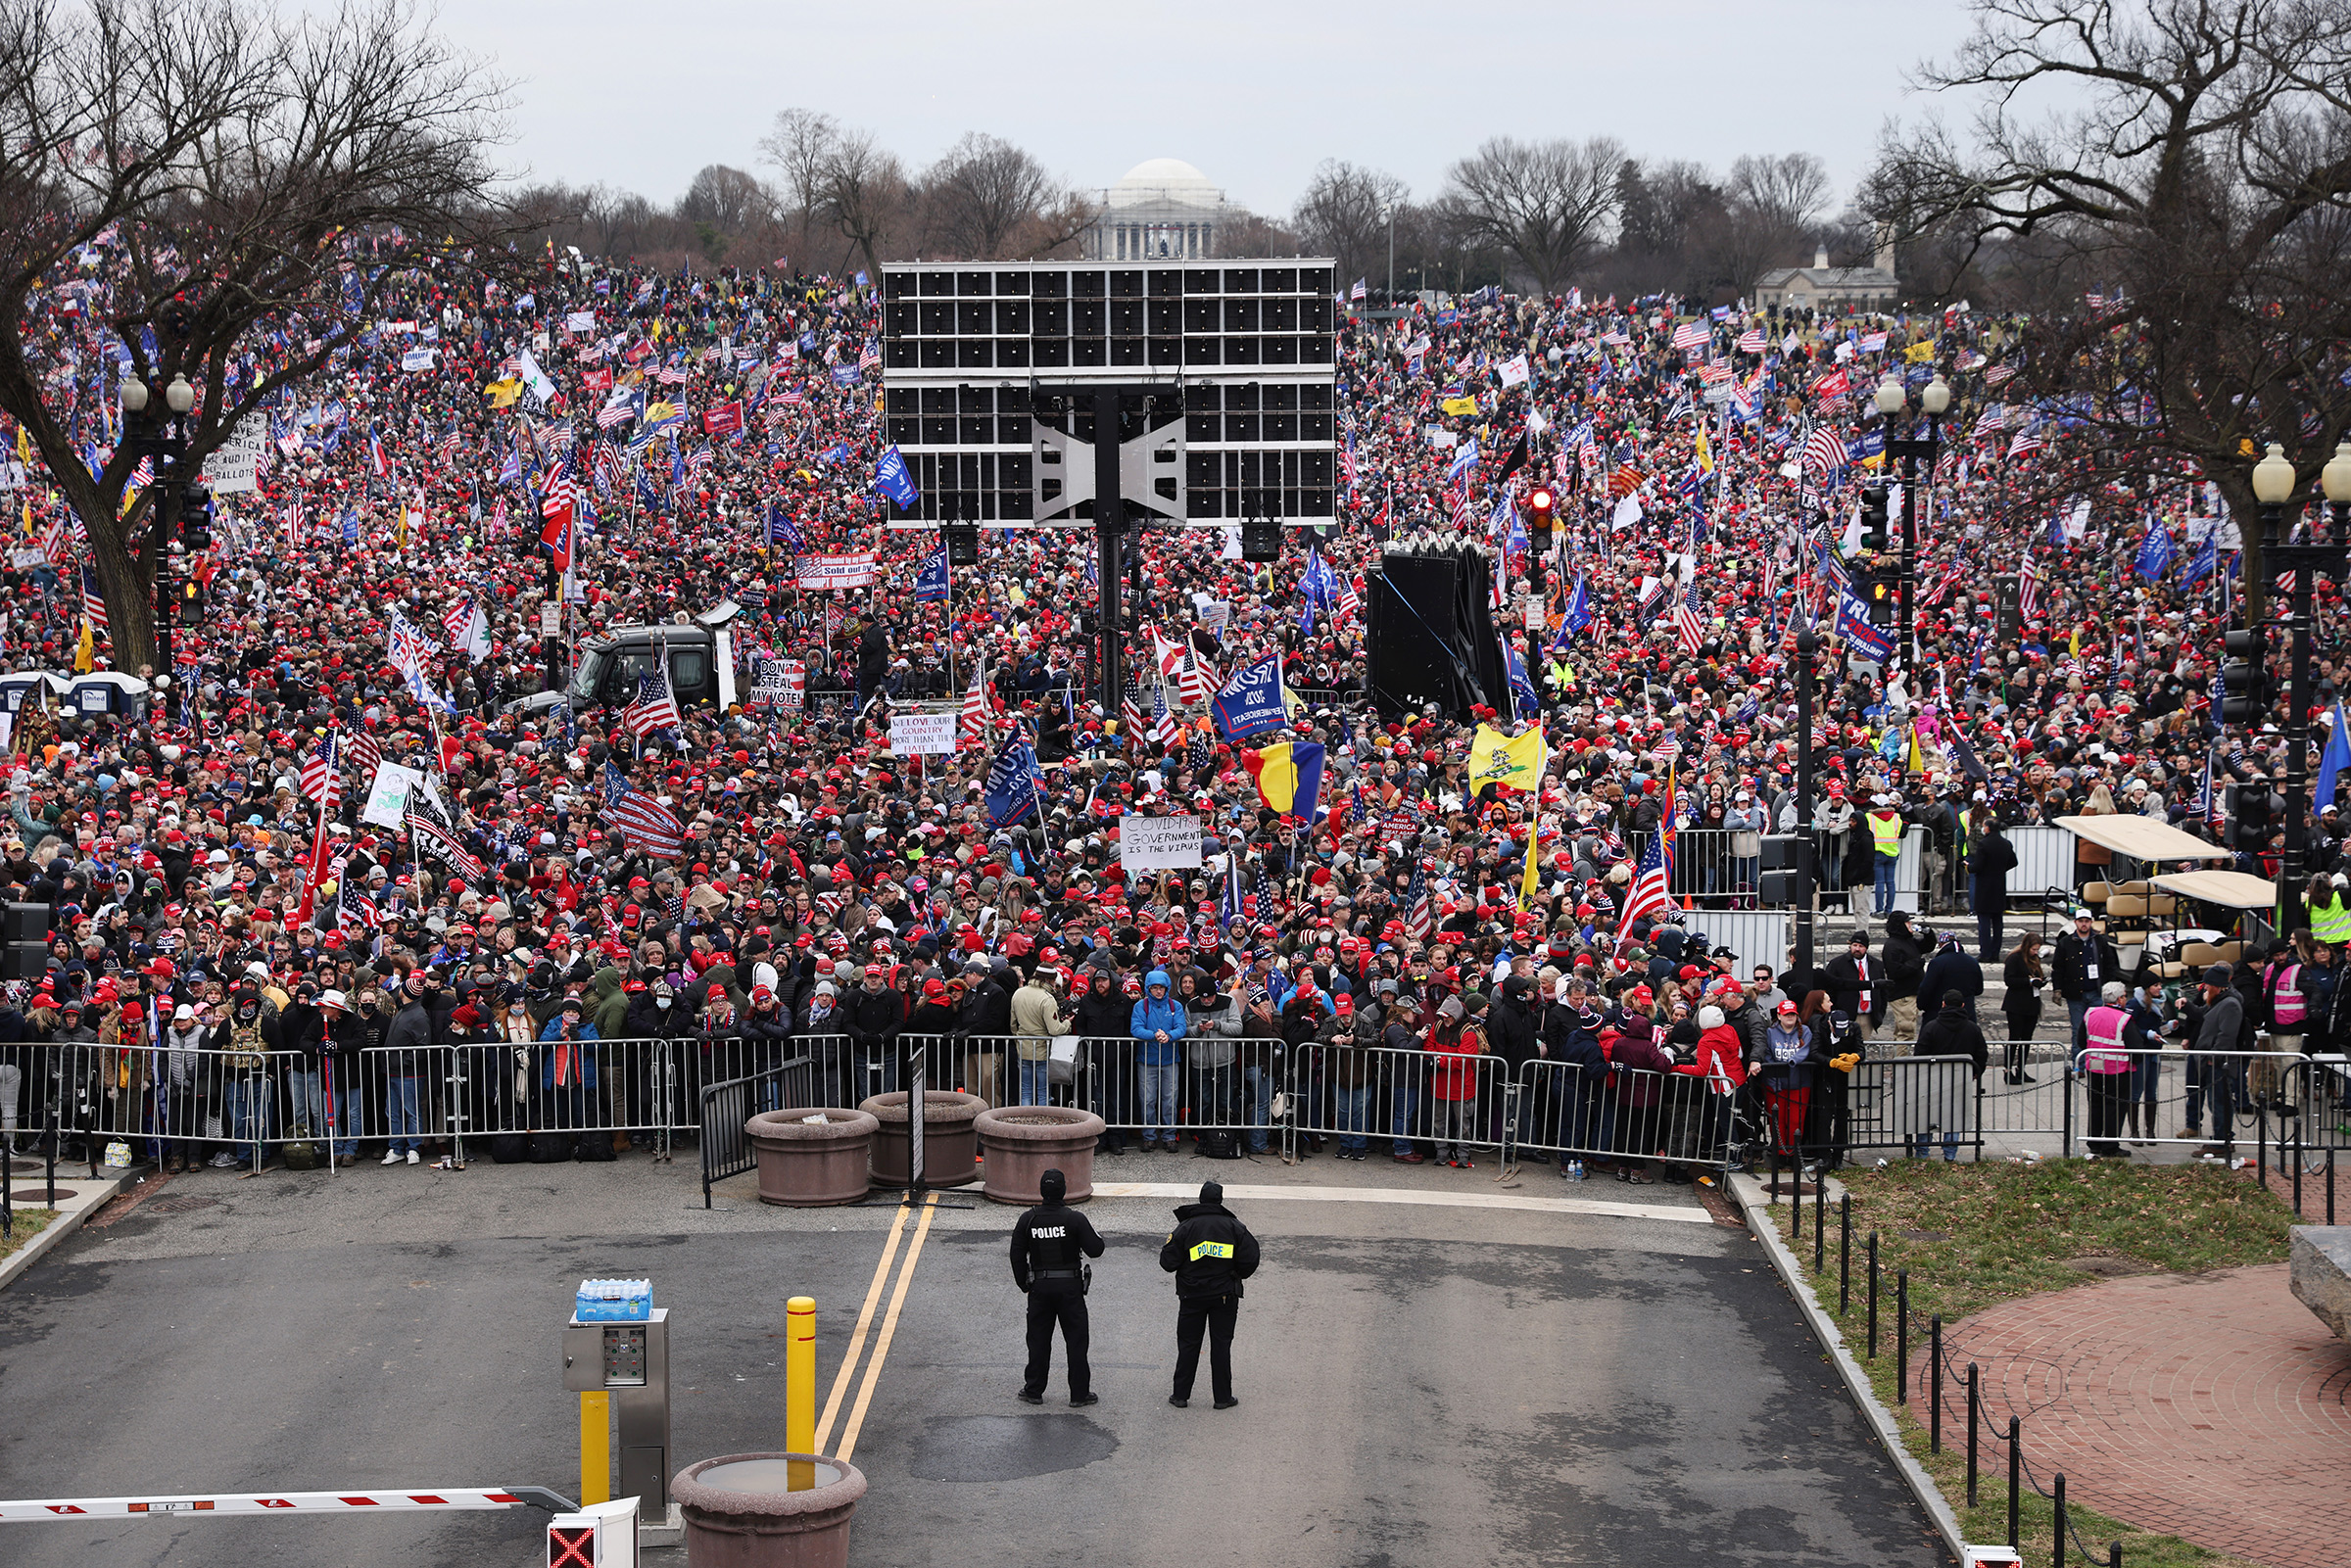 Crowds arrive for the  Stop the Steal  rally in Washington, DC., on Jan. 6, 2021.